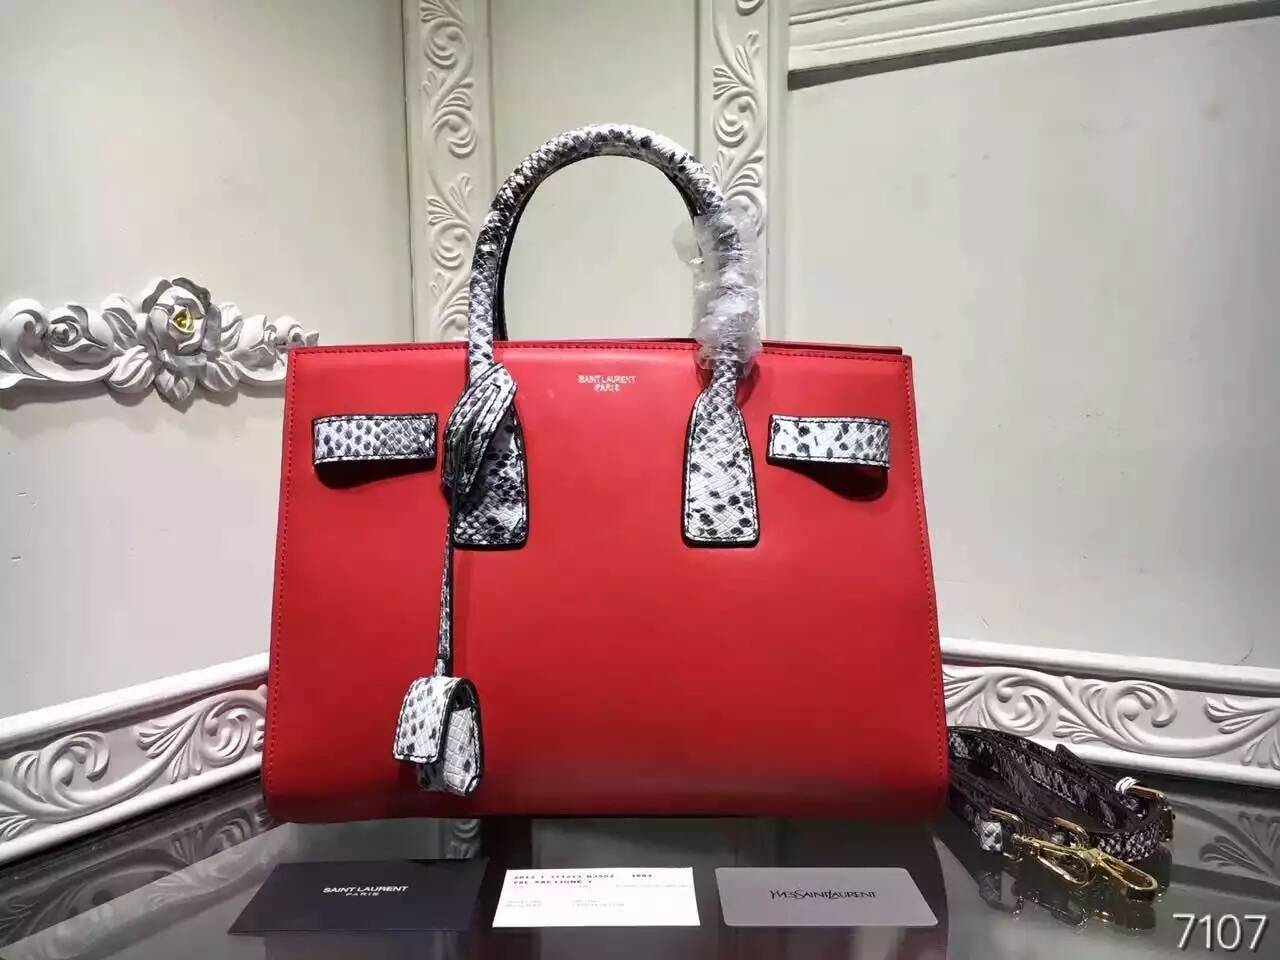 2016 New Saint Laurent Bag Cheap Sale-Saint Laurent Classic Sac De Jour Bag in Red Calfskin and Python Embossed Leather